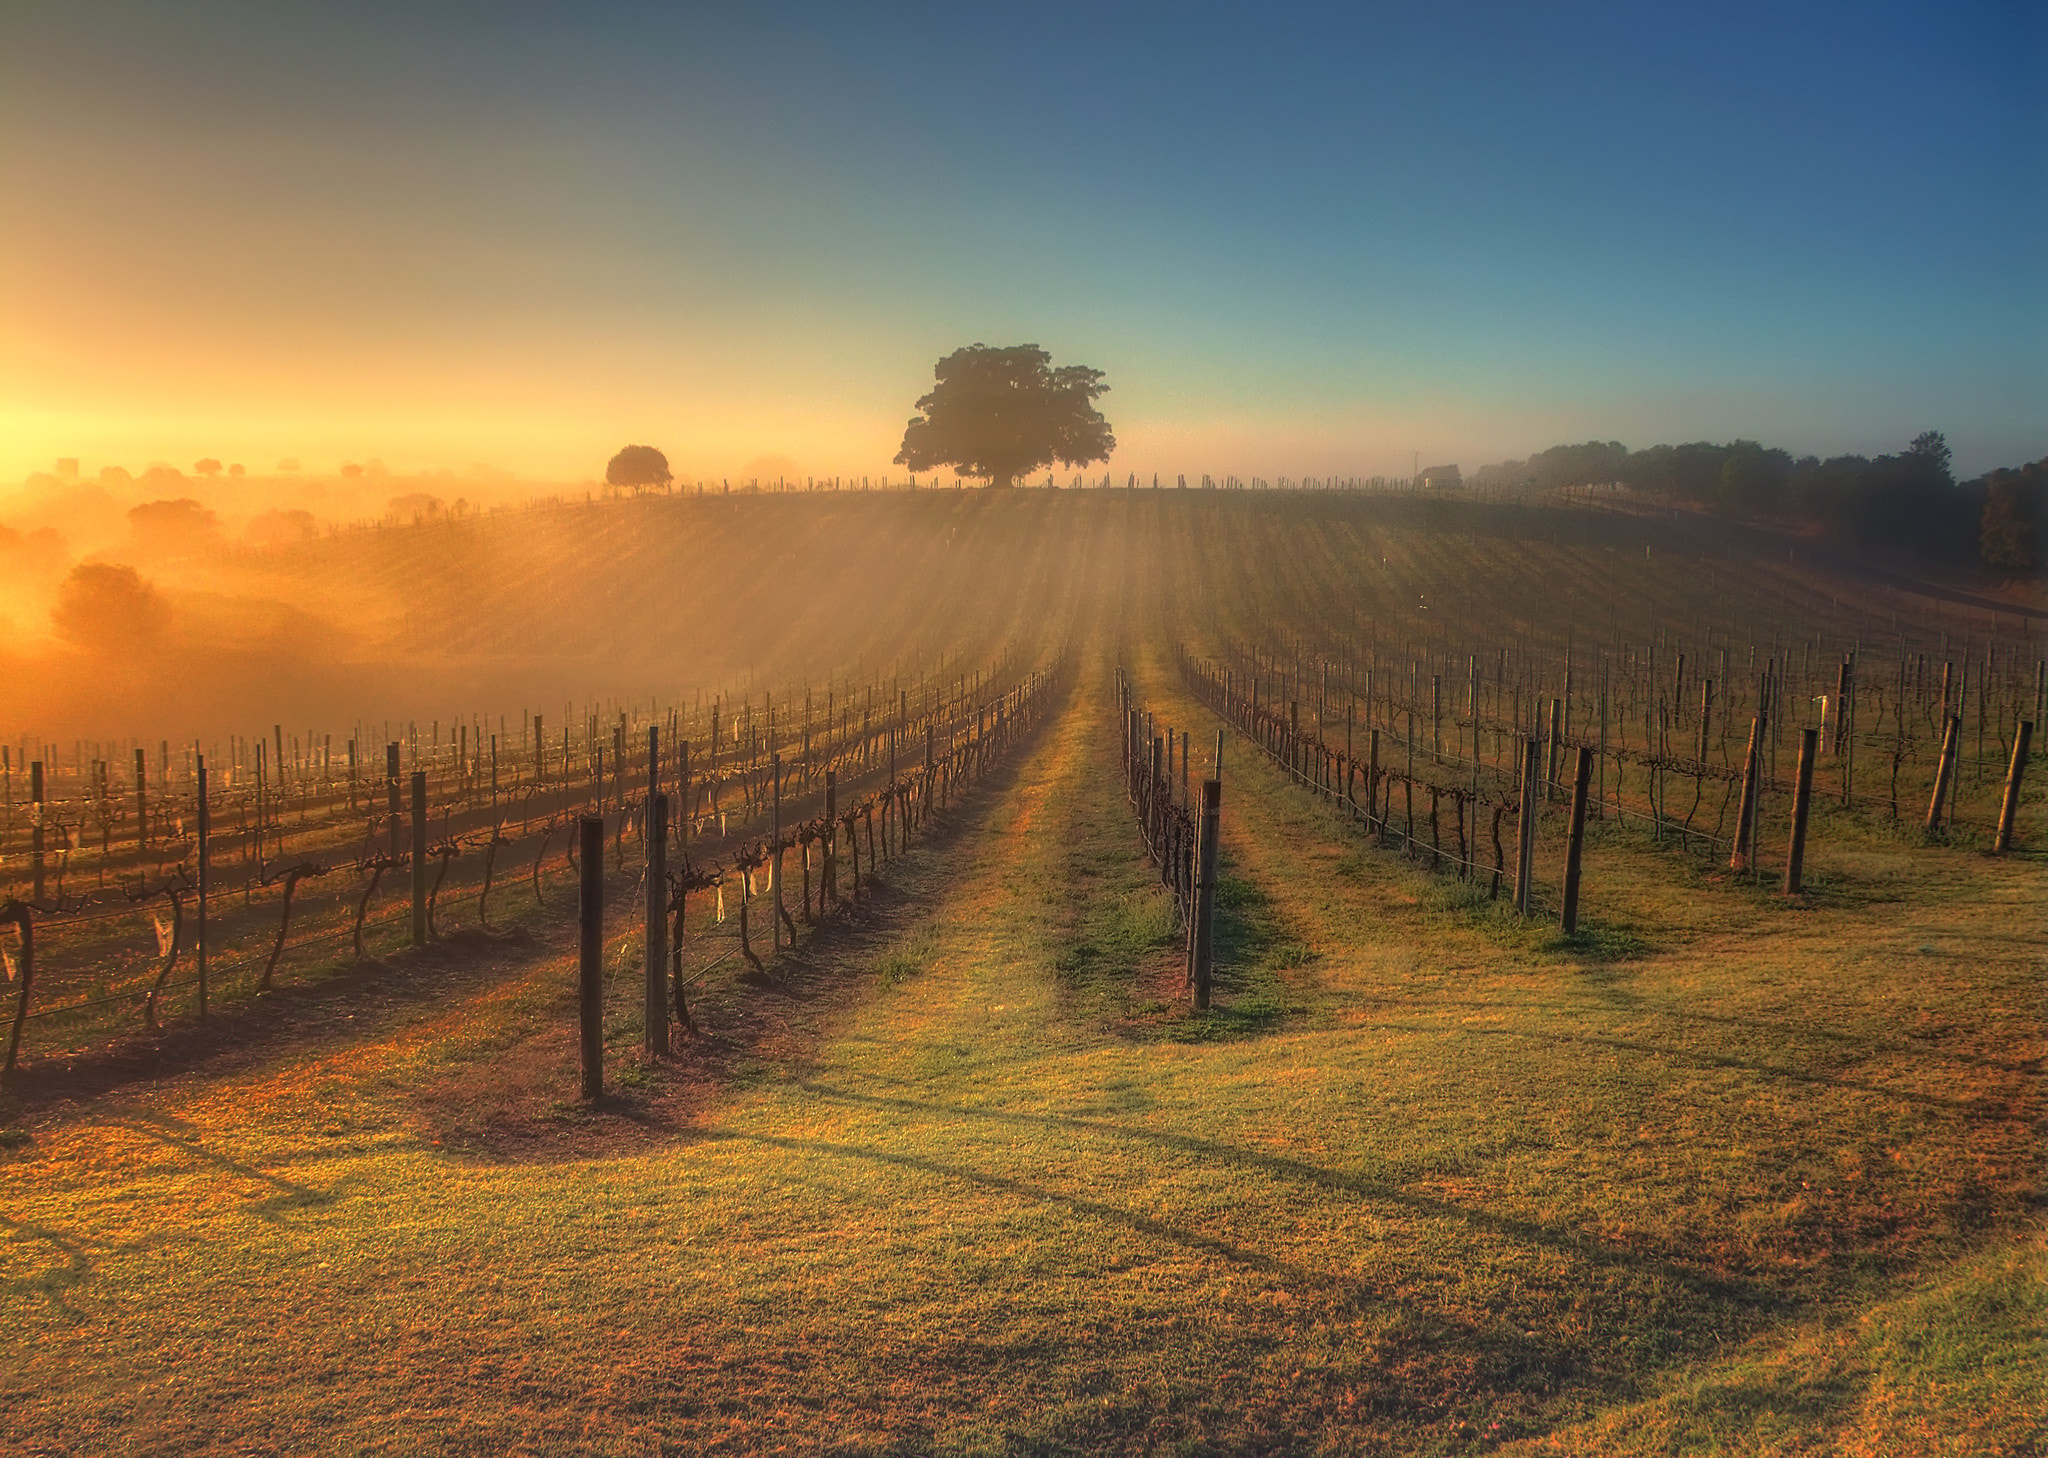 Photograph Let There Be Wine by Steve mcdermott on 500px